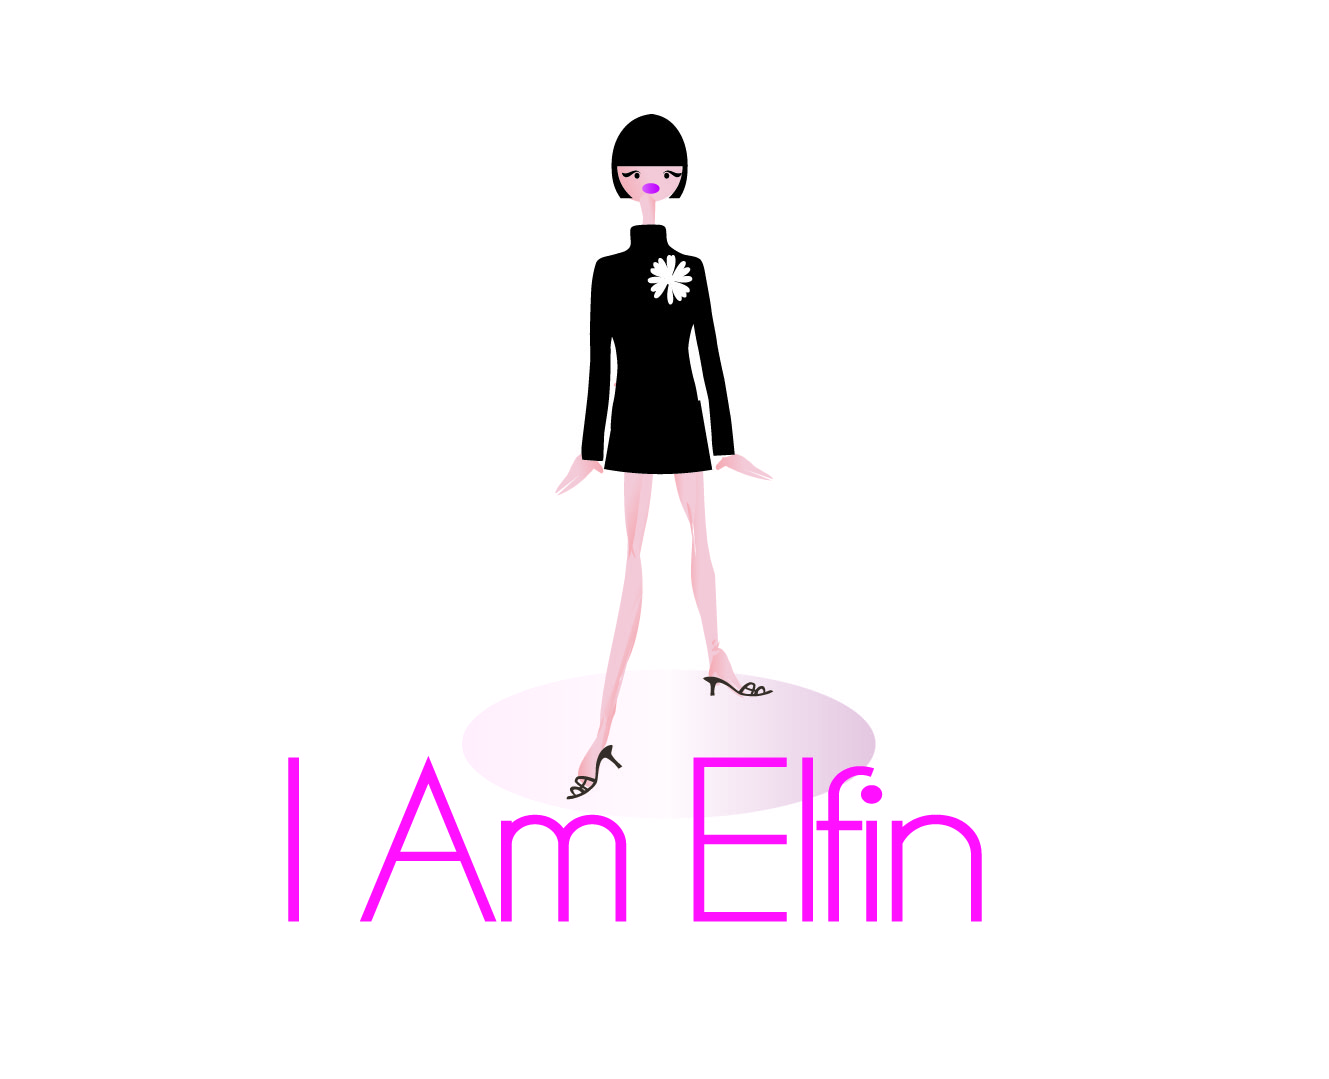 Feminine Personable Clothing Logo Design For Iamelfin By Crescent Moon Design 1250112